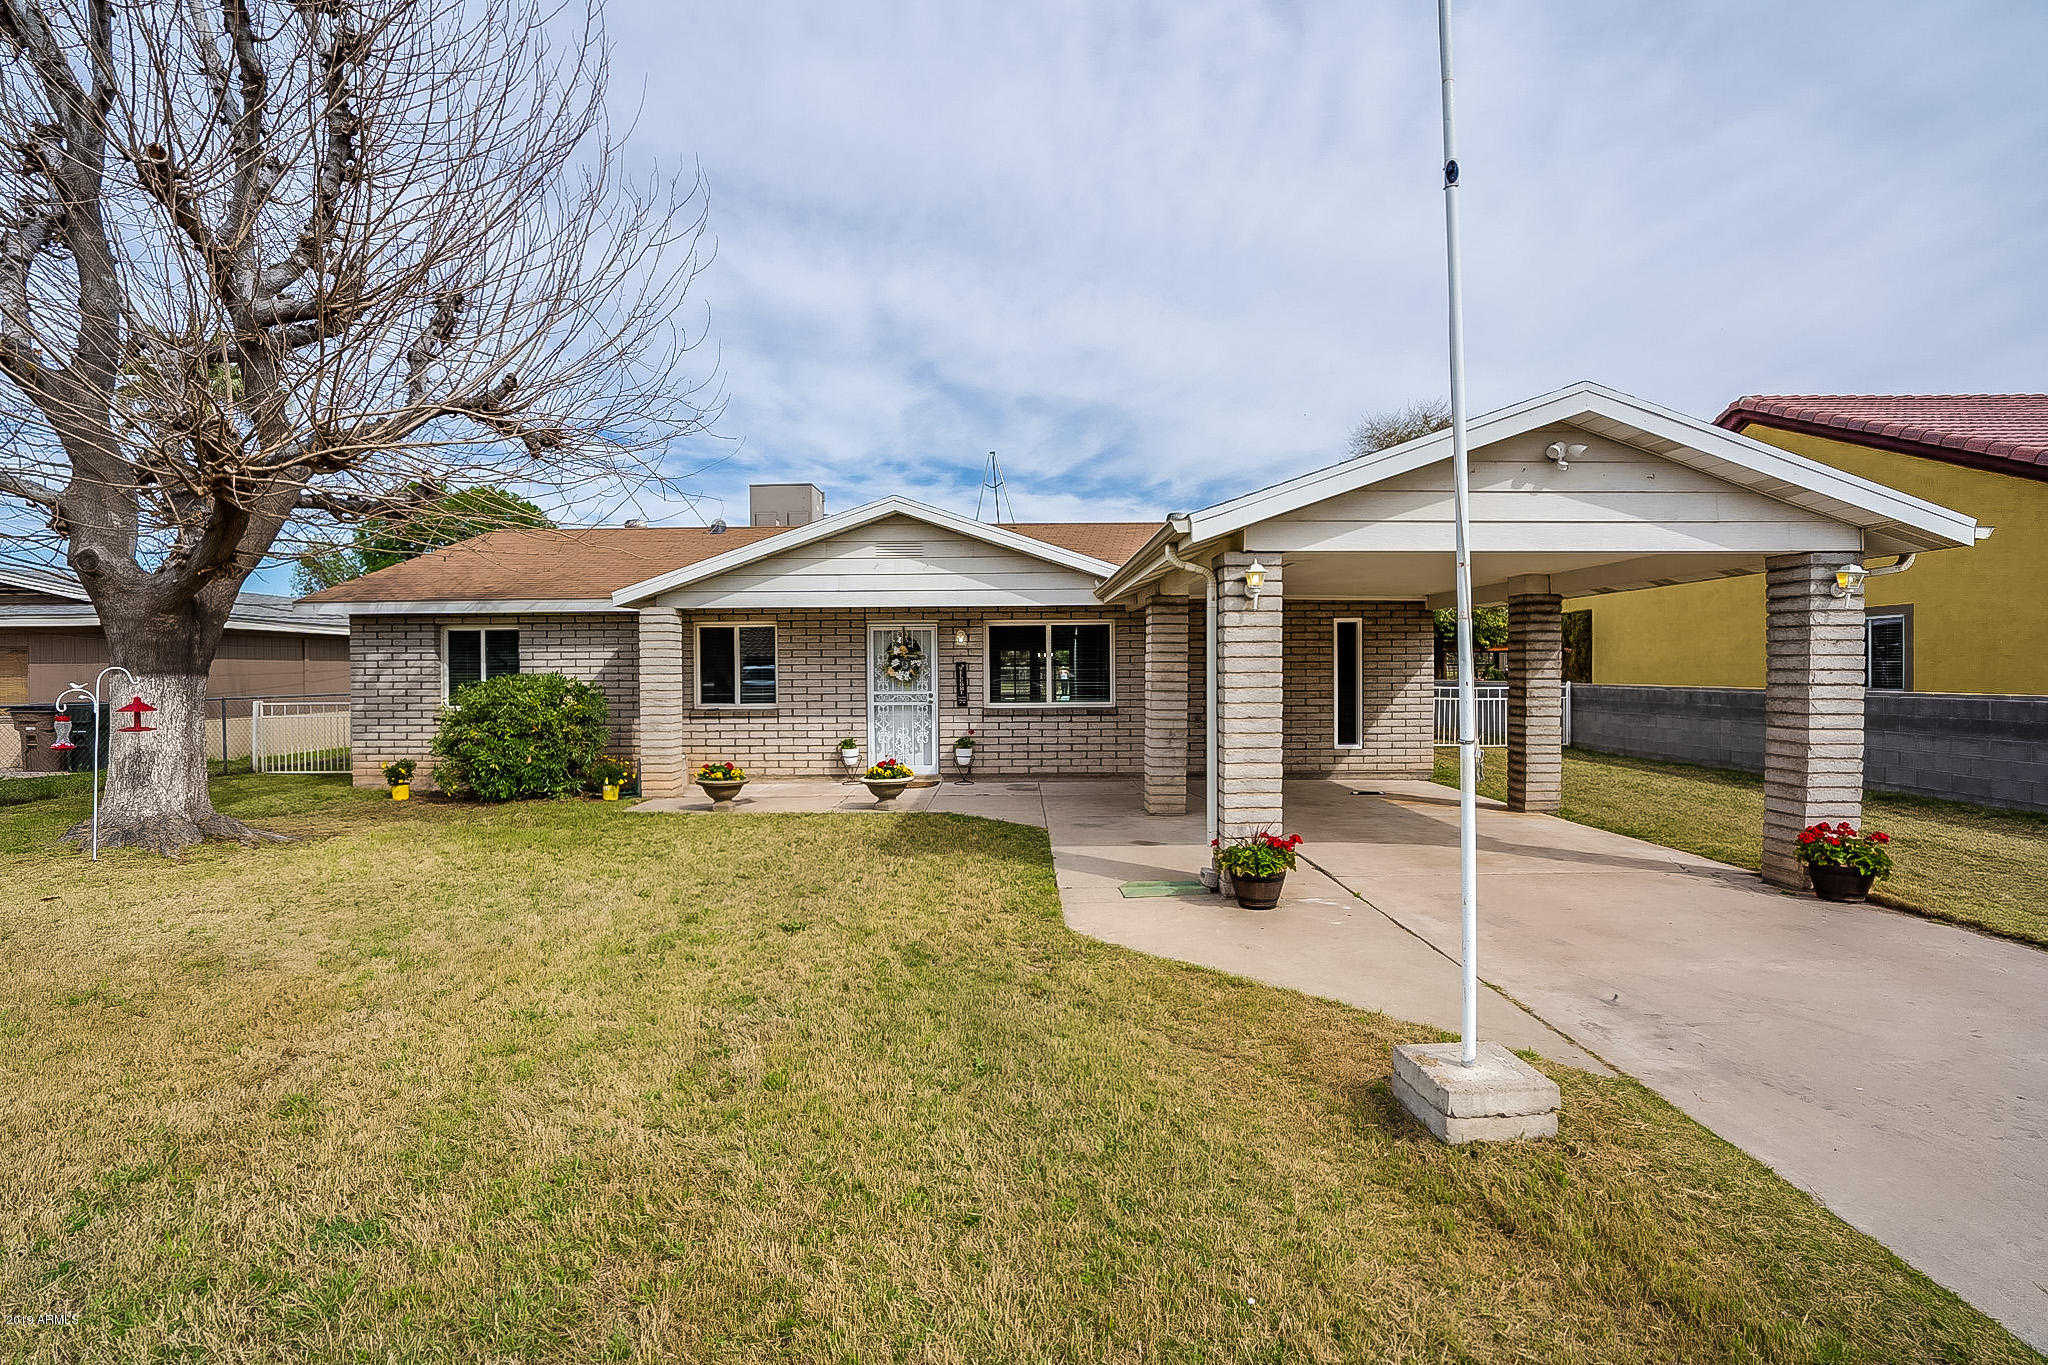 $339,900 - 3Br/2Ba - Home for Sale in Metes & Bounds, Glendale